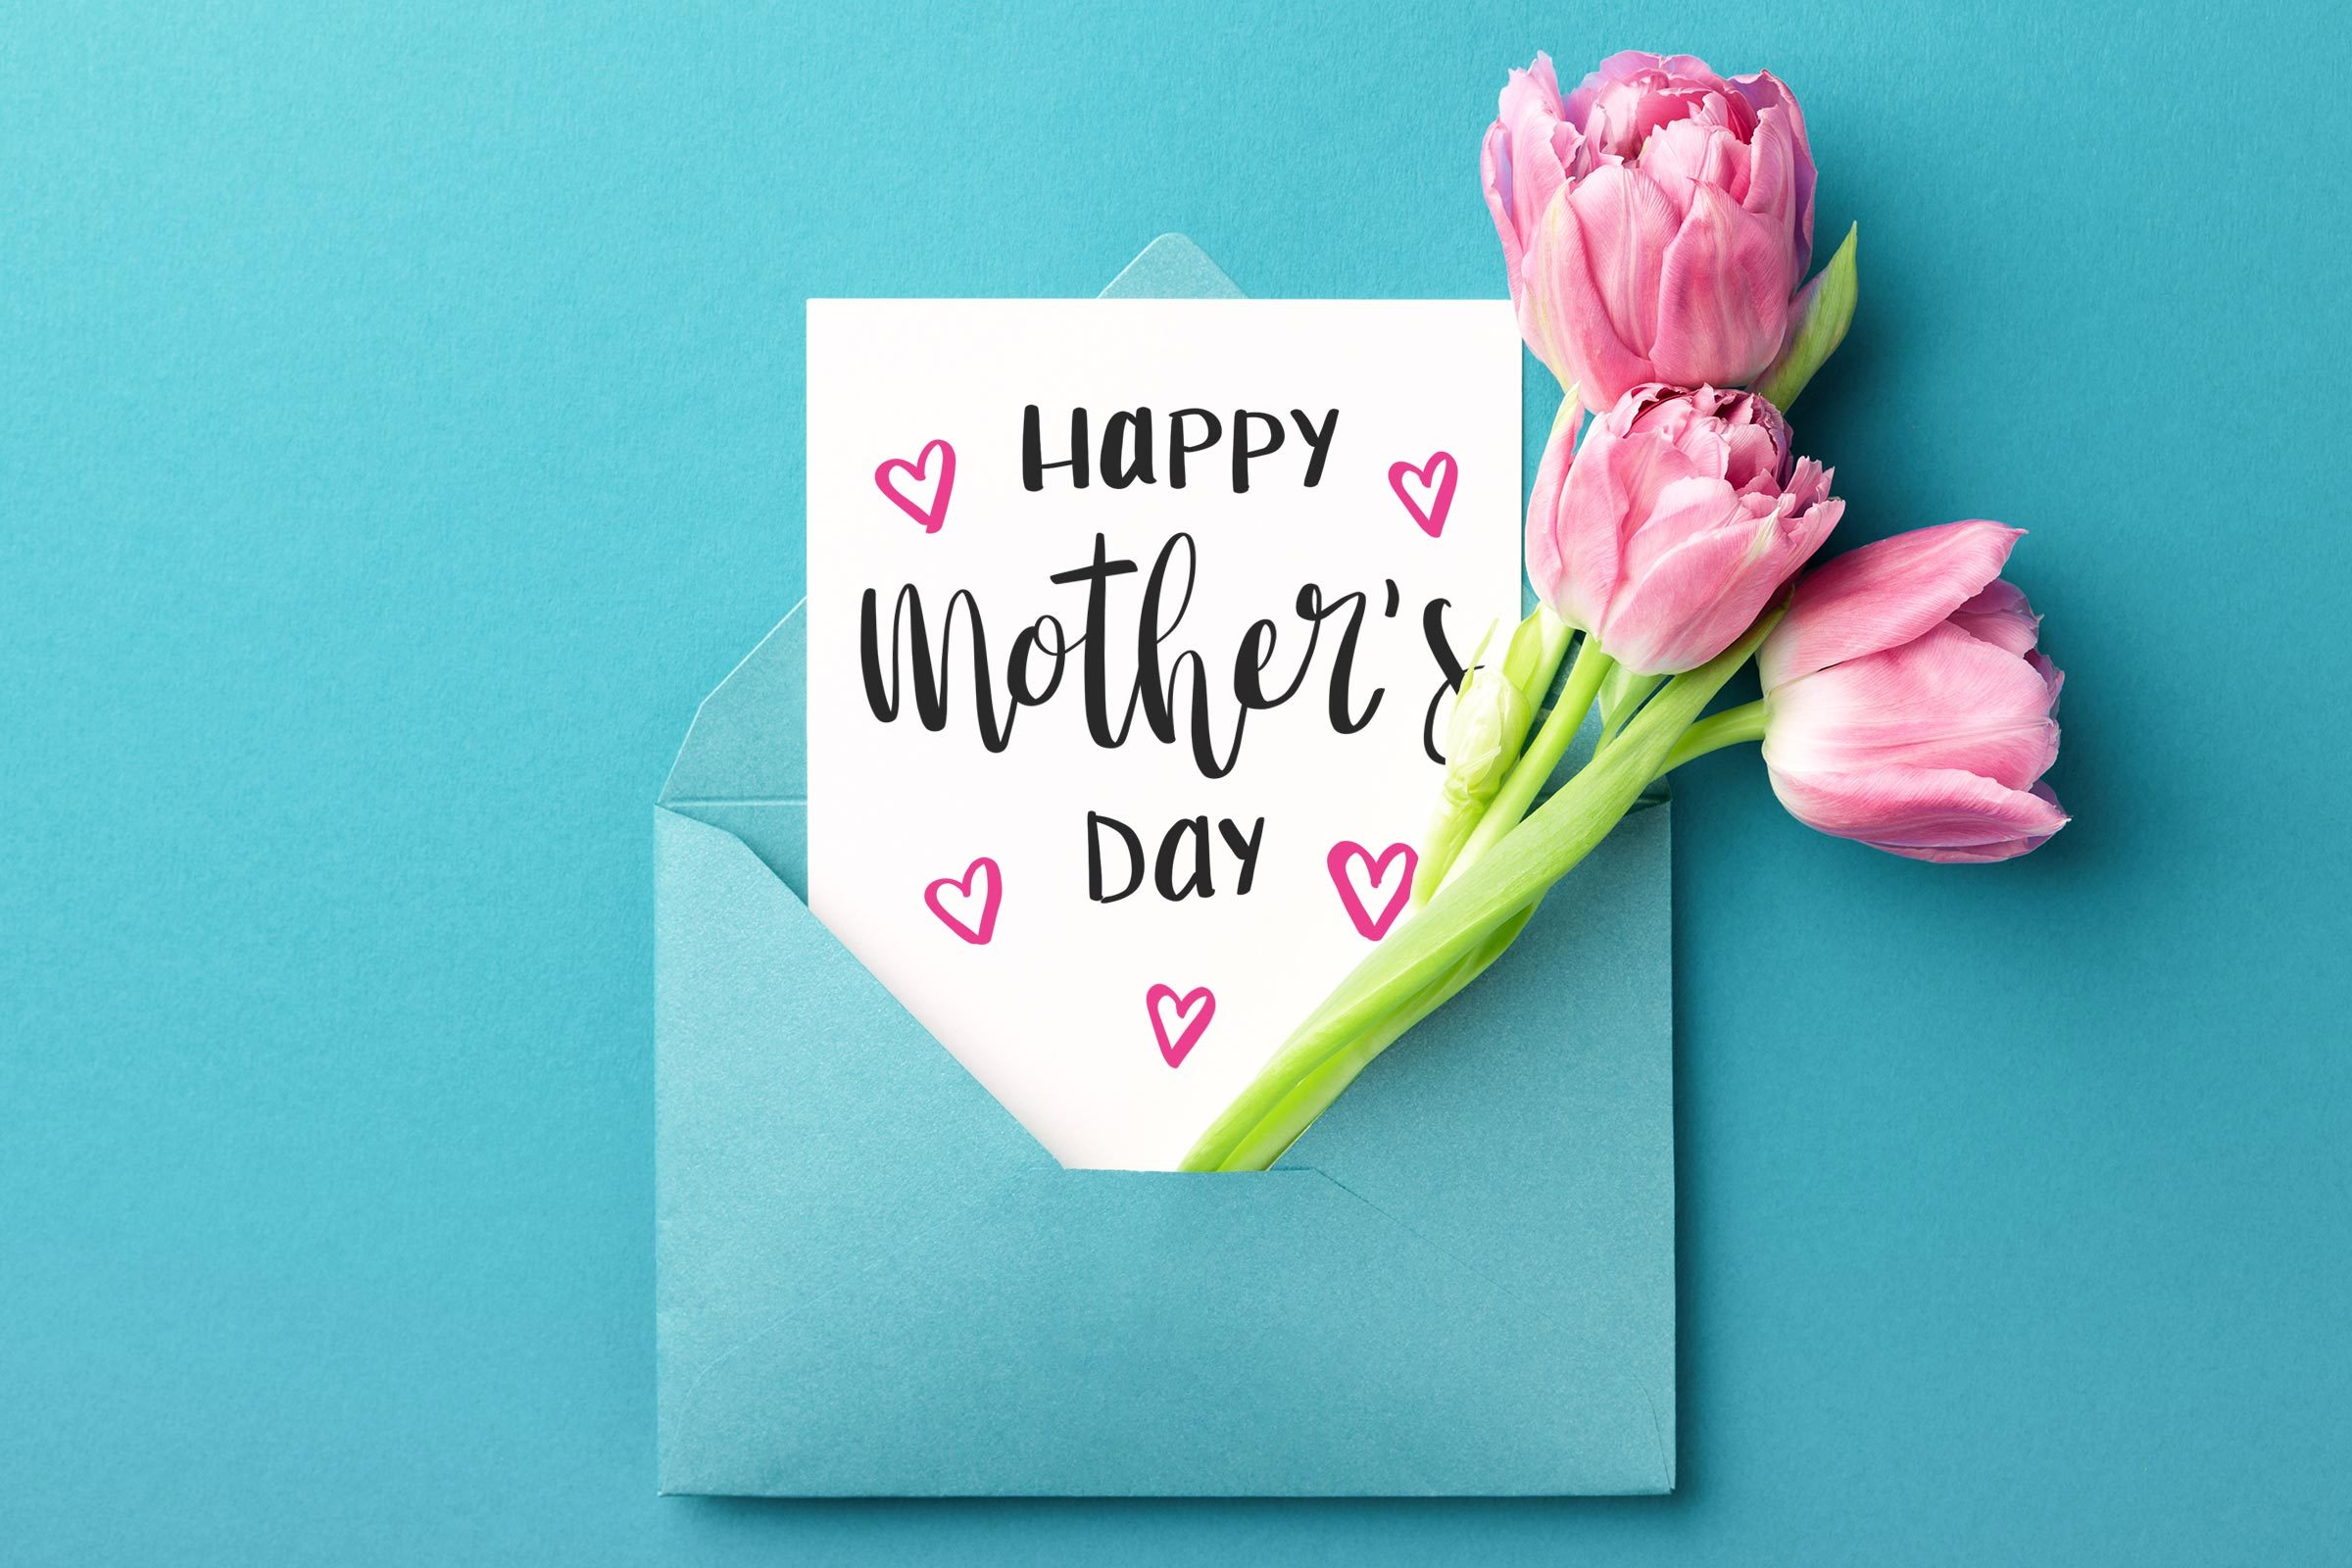 happy mother's day status video